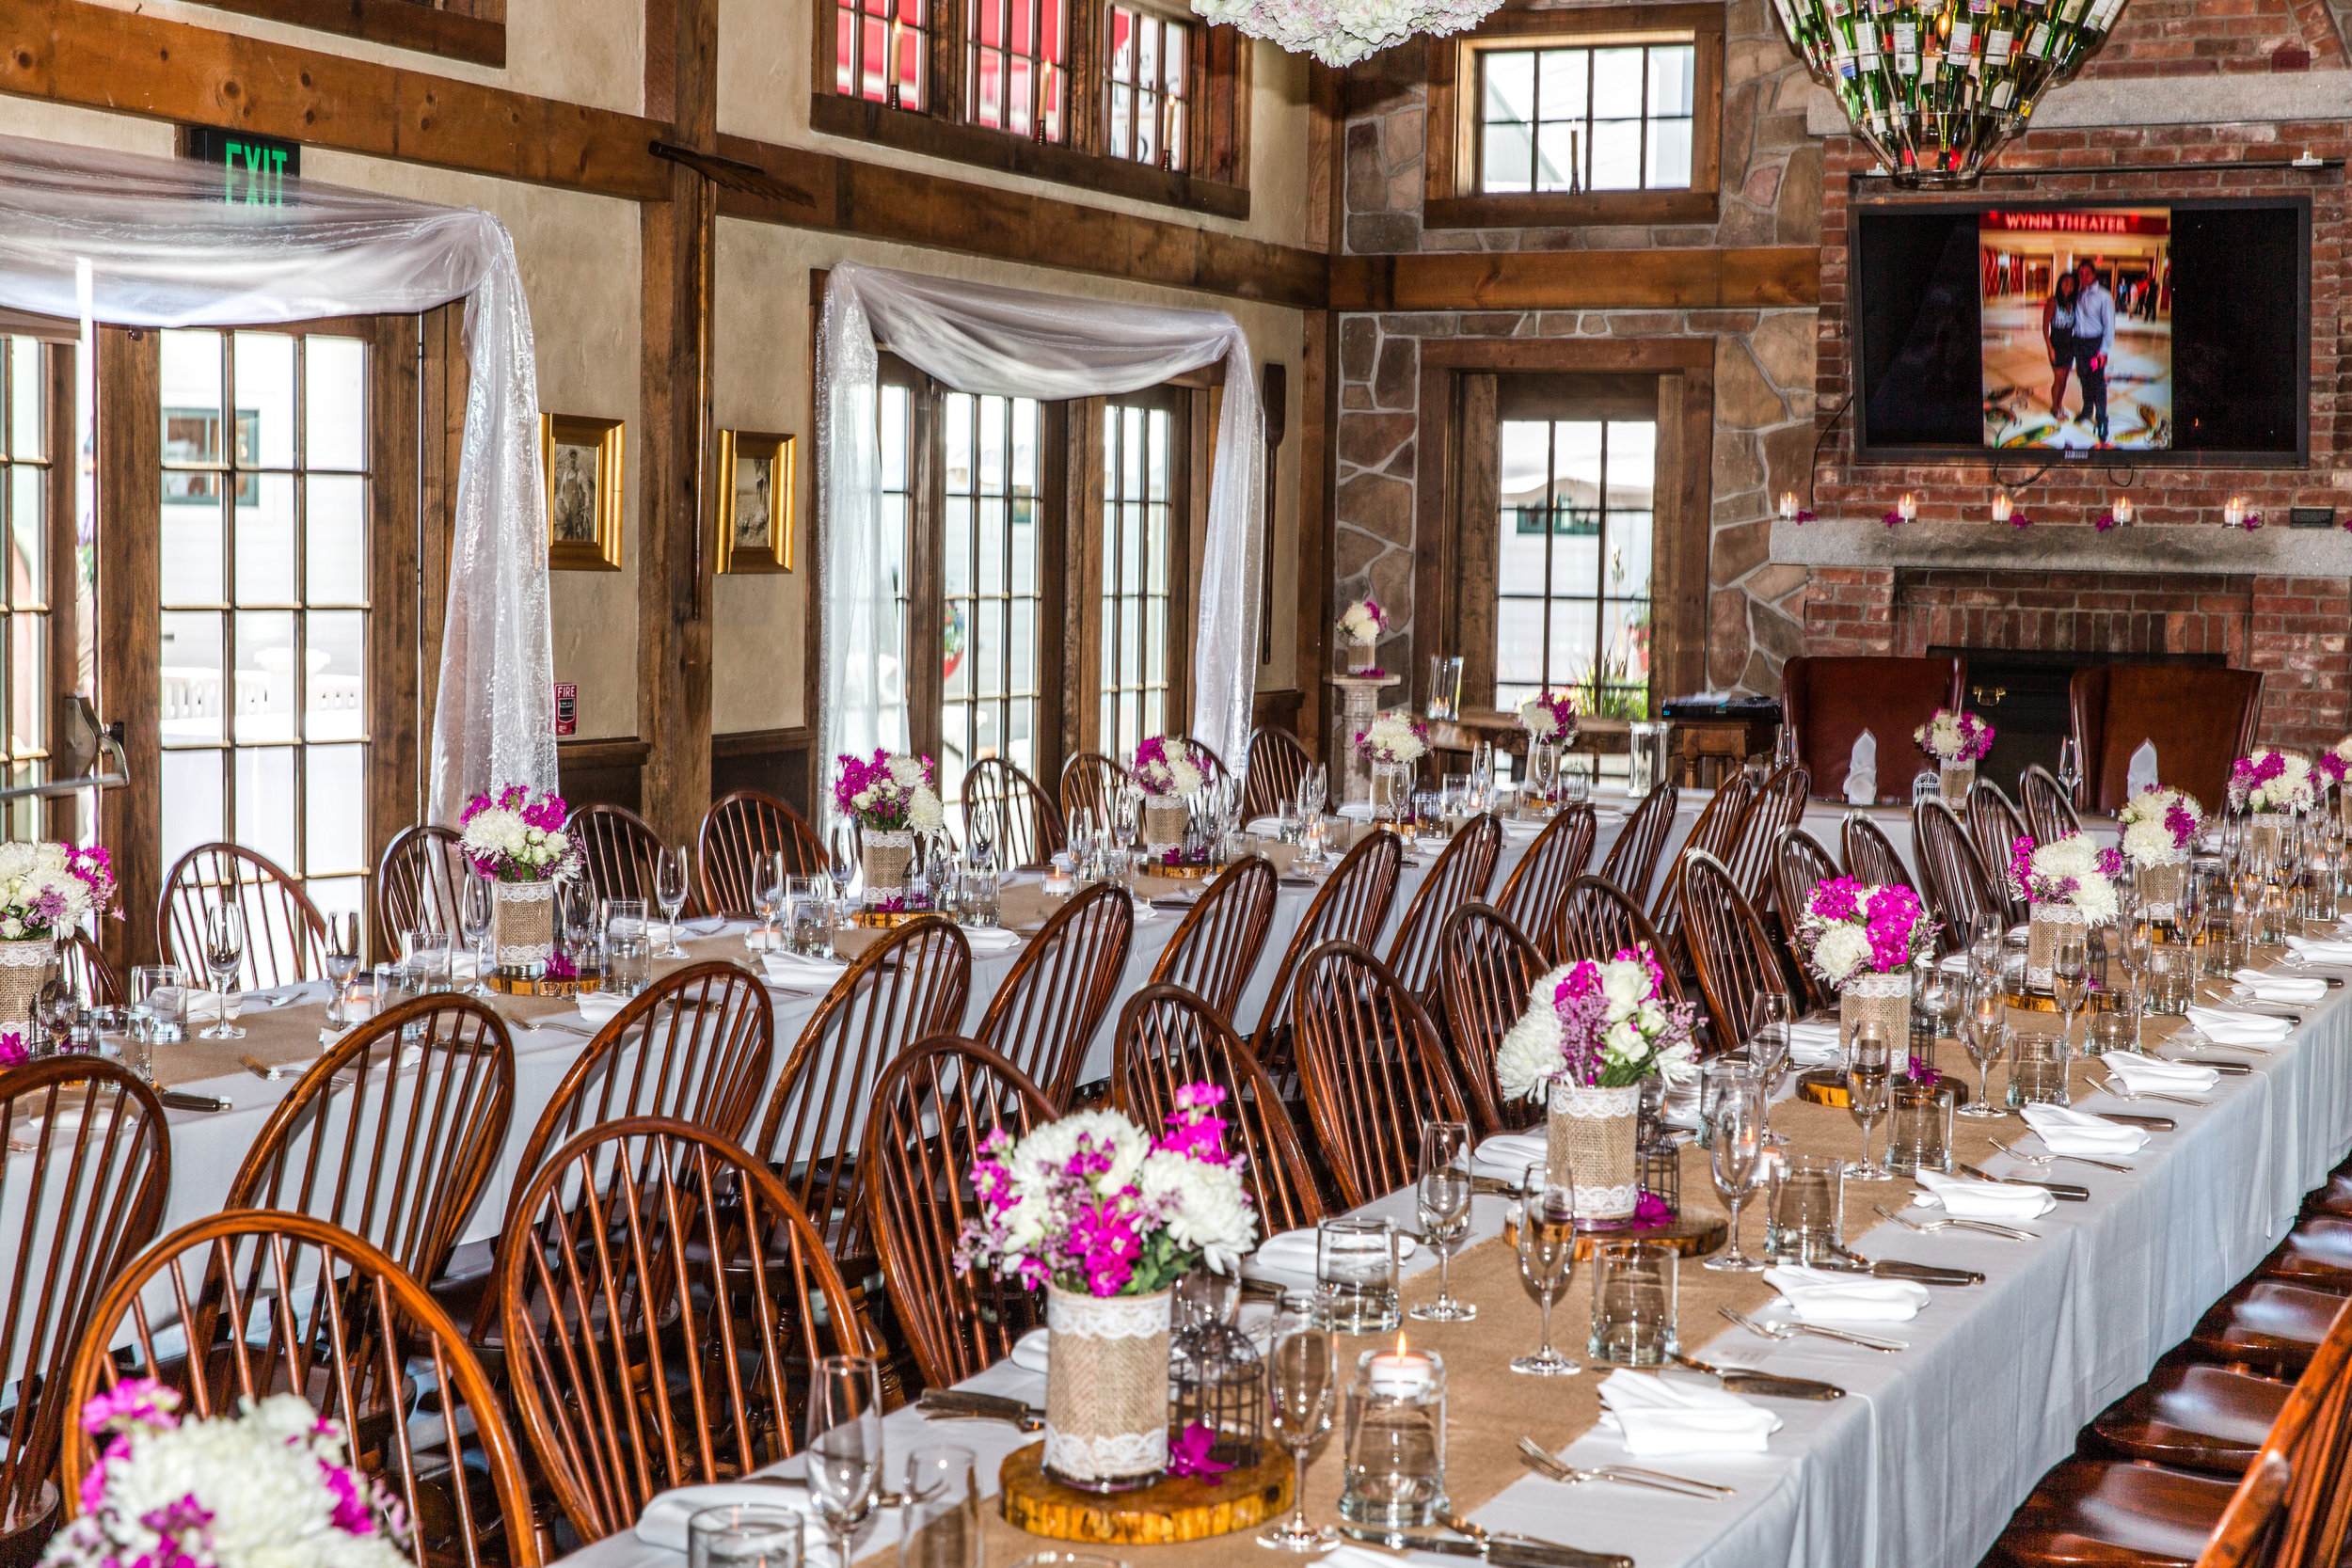 Farm Table Special Occasions.jpg